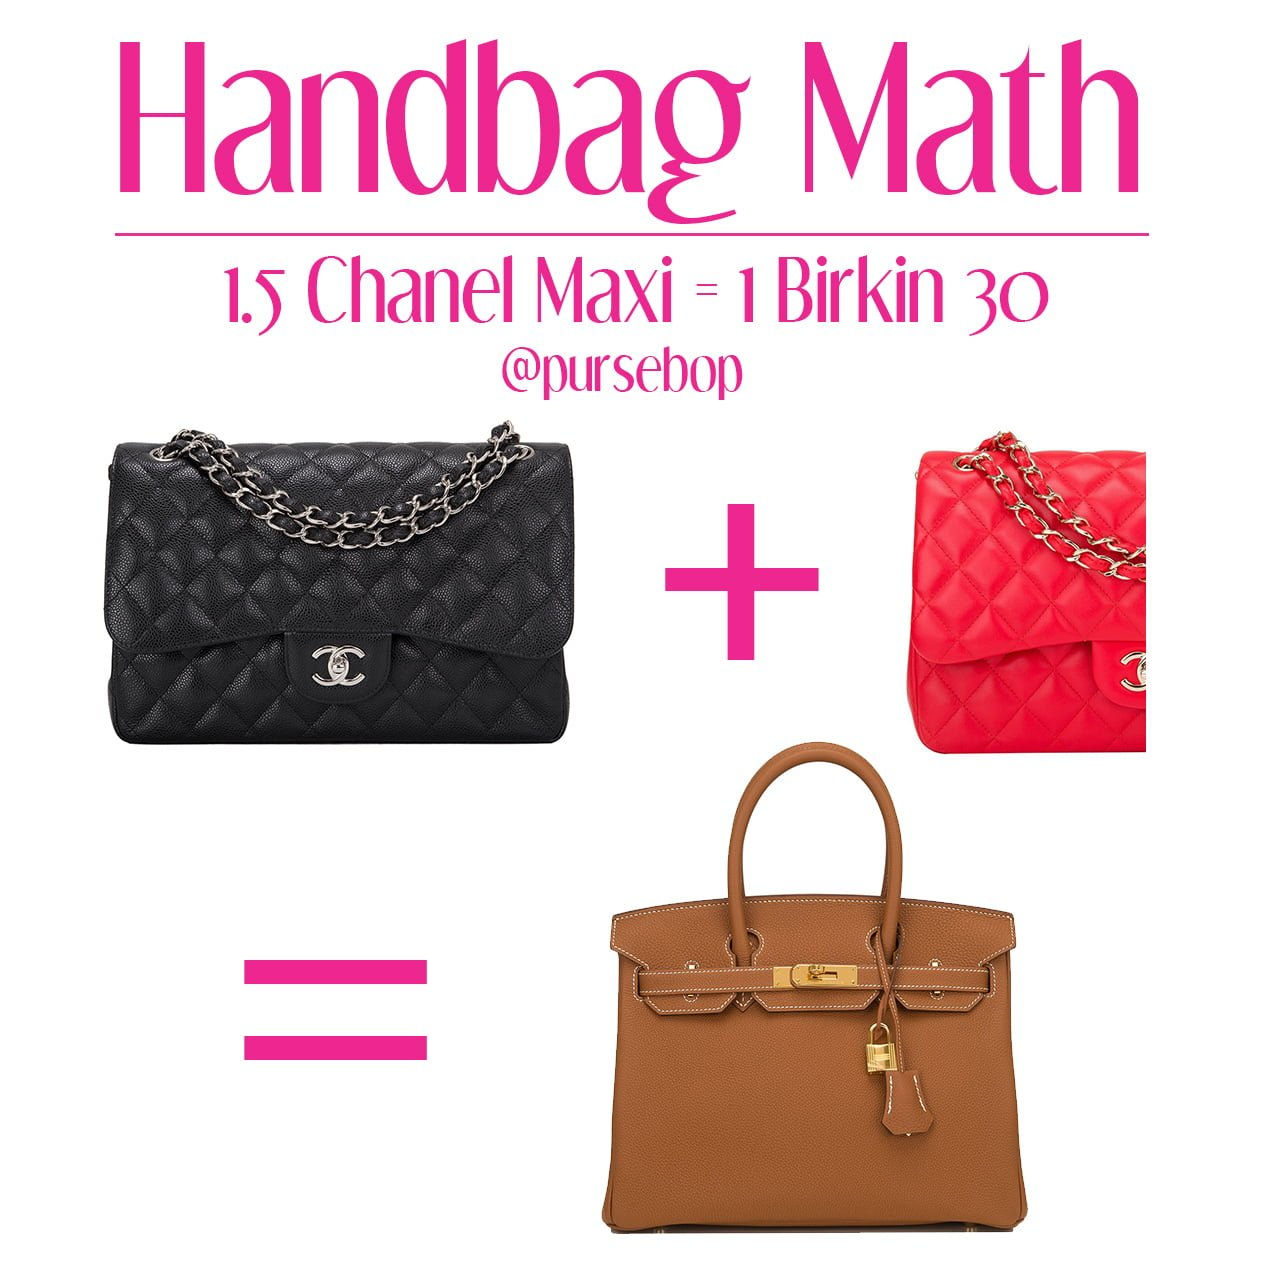 0008 - Chanel-equals-Birkin_vs1